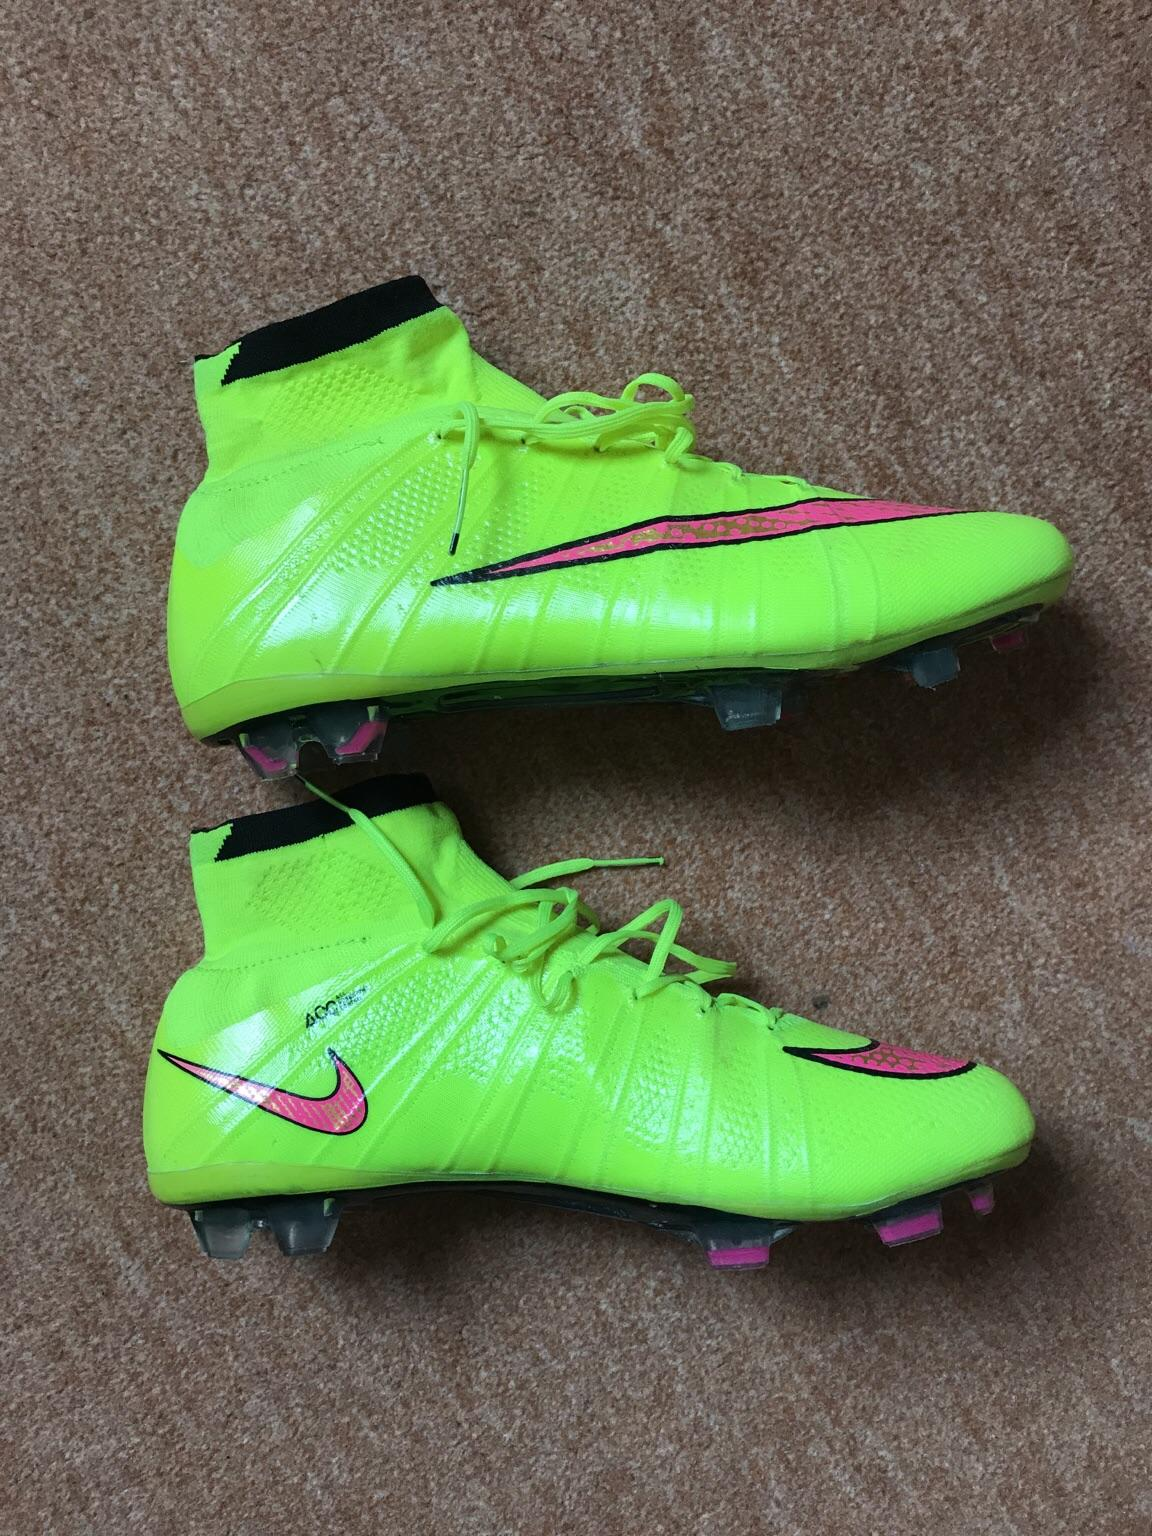 outlet uk availability size 7 Nike Mercurial Vapor